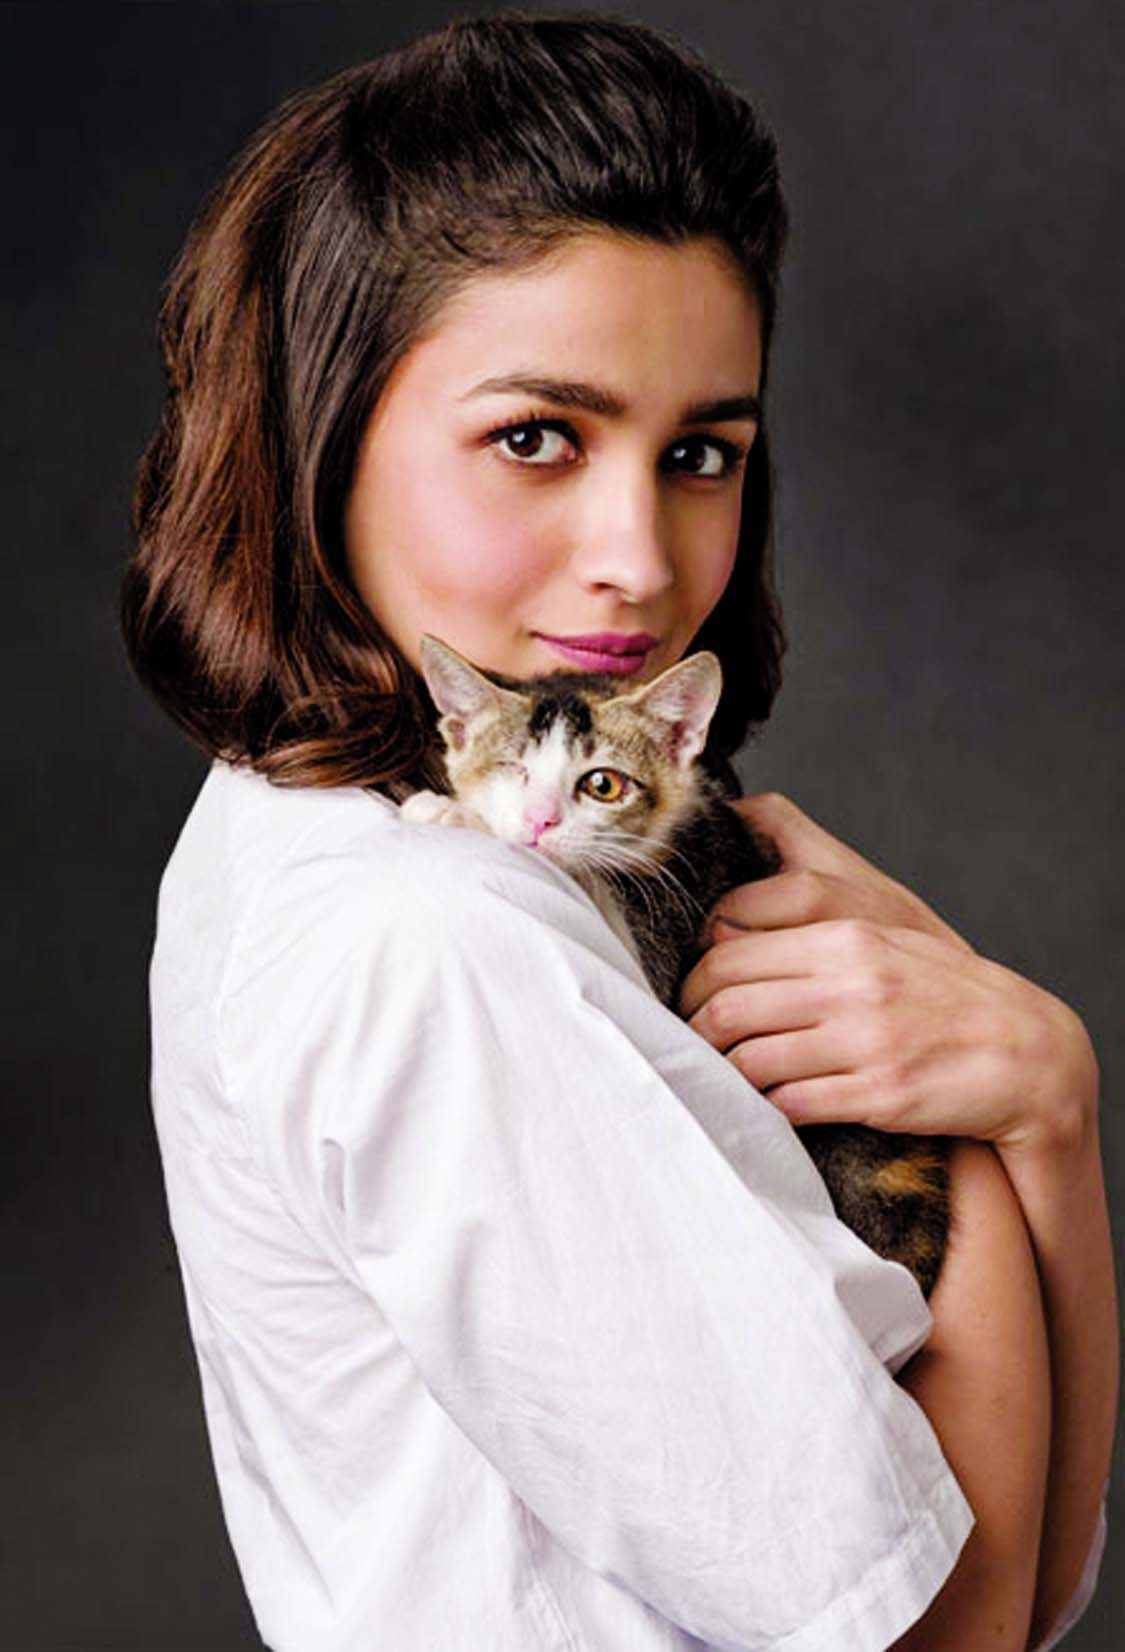 Alia Bhatt champions the welfare of street cats and dogs